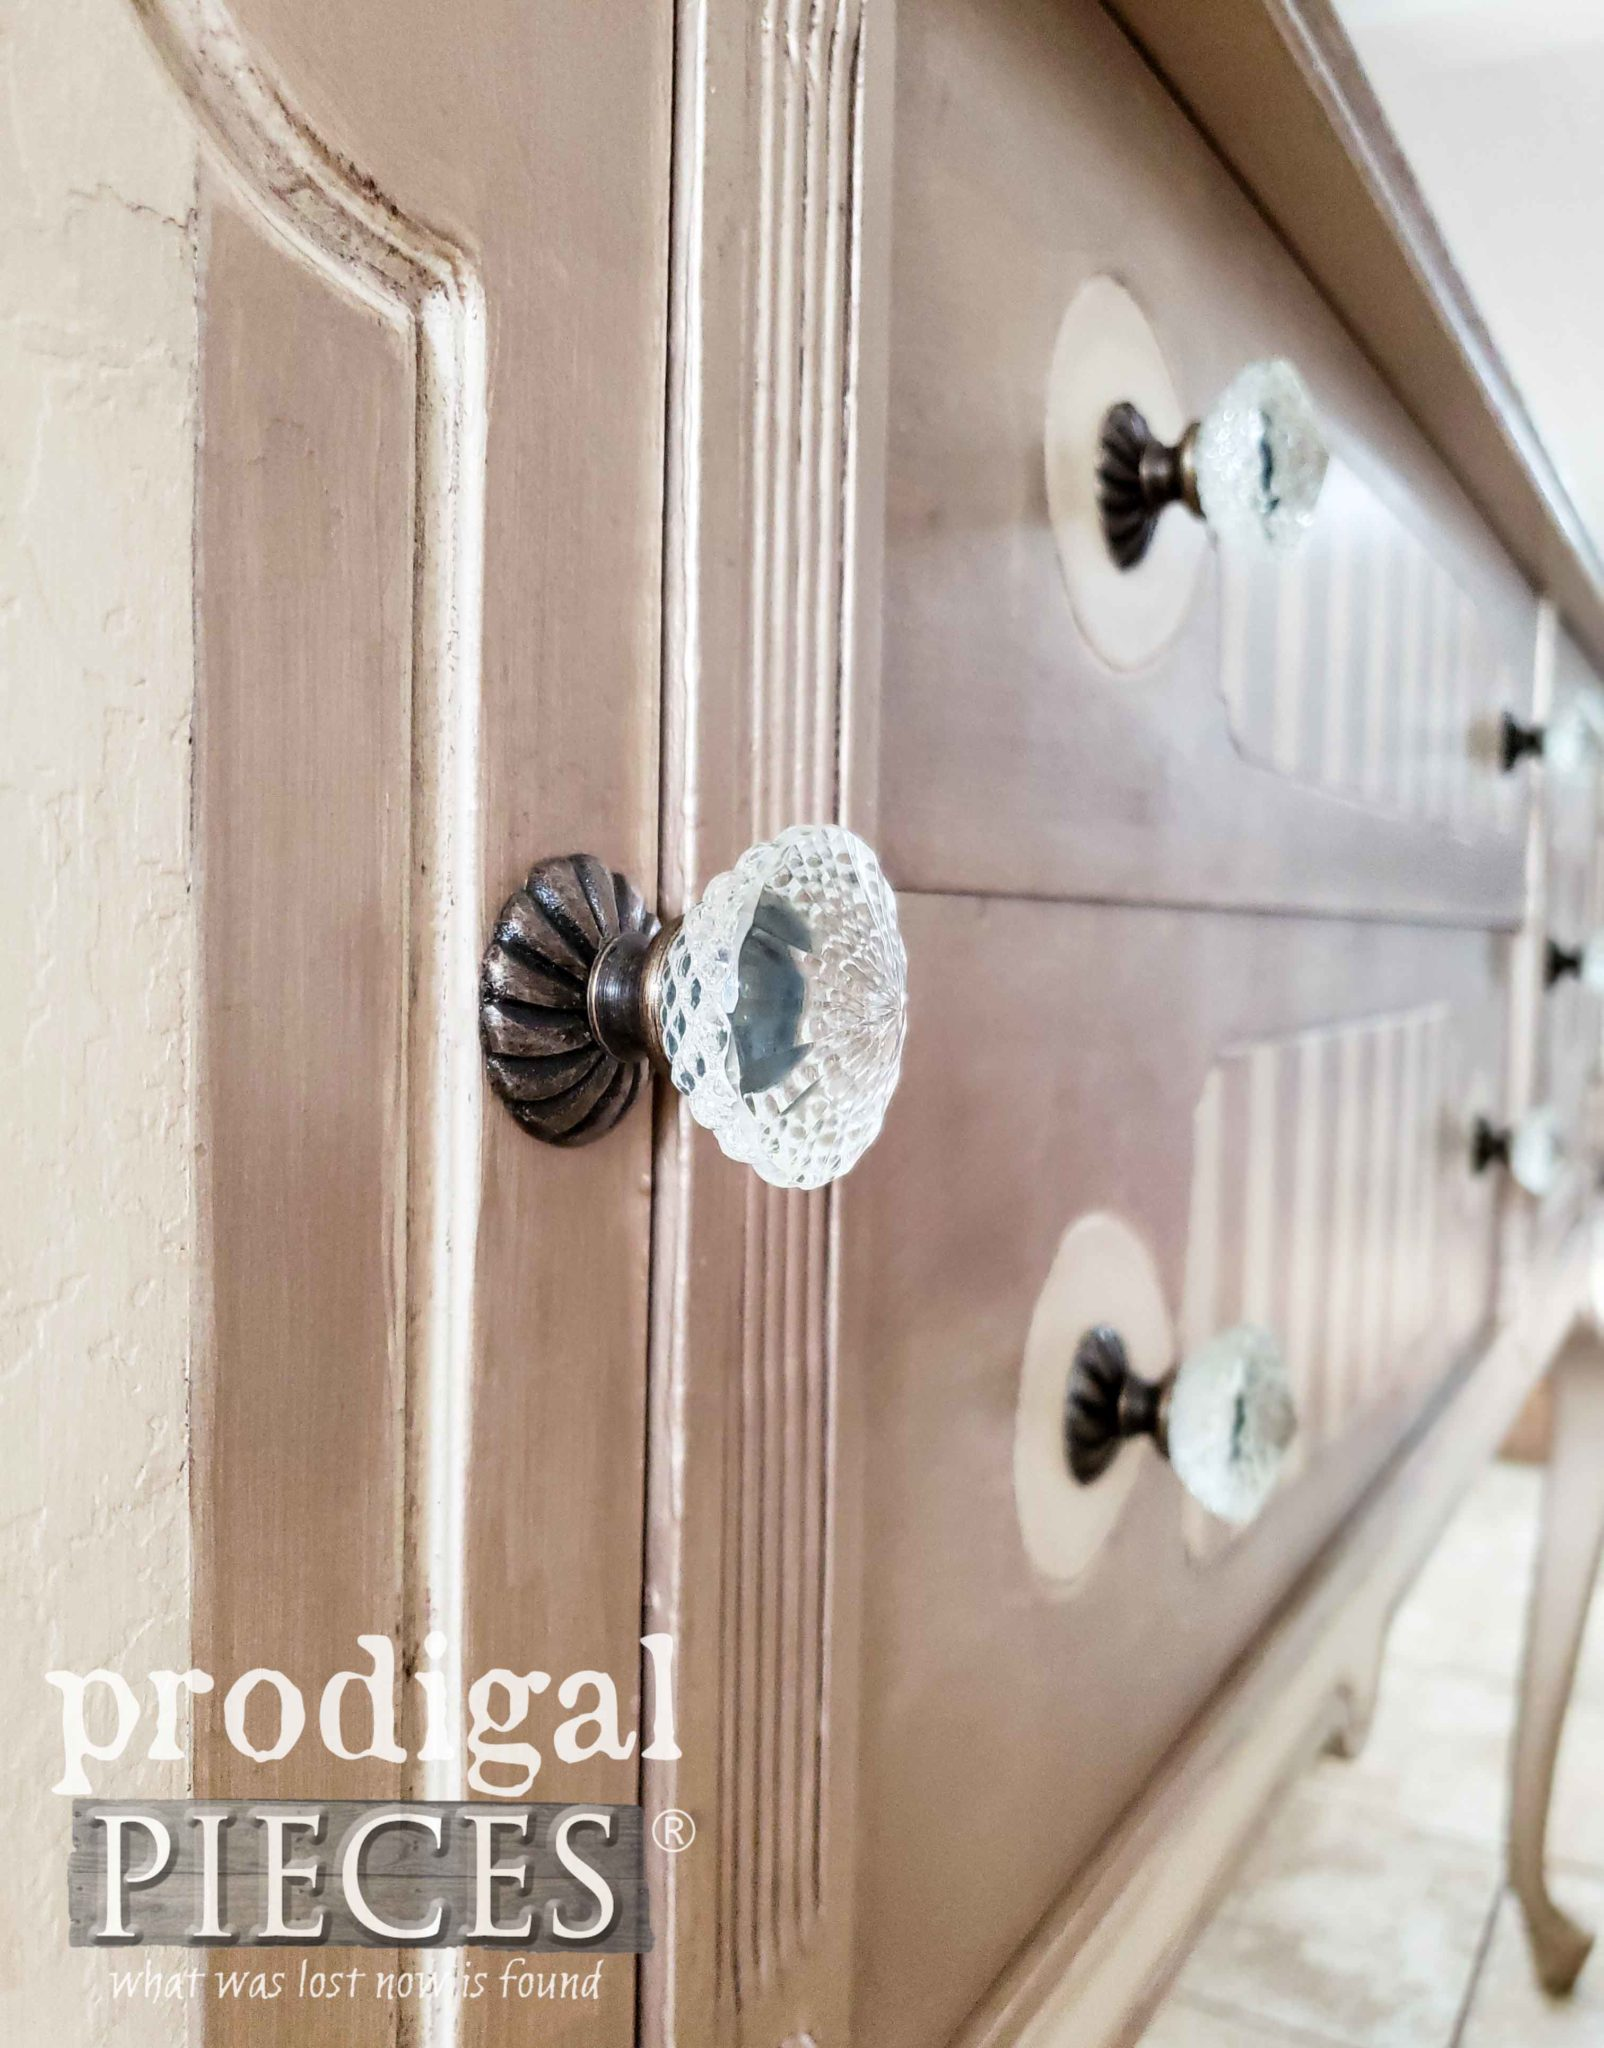 Faceted Glass Pulls on Antique Queen Anne Buffet by Larissa of Prodigal Pieces | prodigalpieces.com #prodigalpieces #furniture #home #diy #homedecor #shabbychic